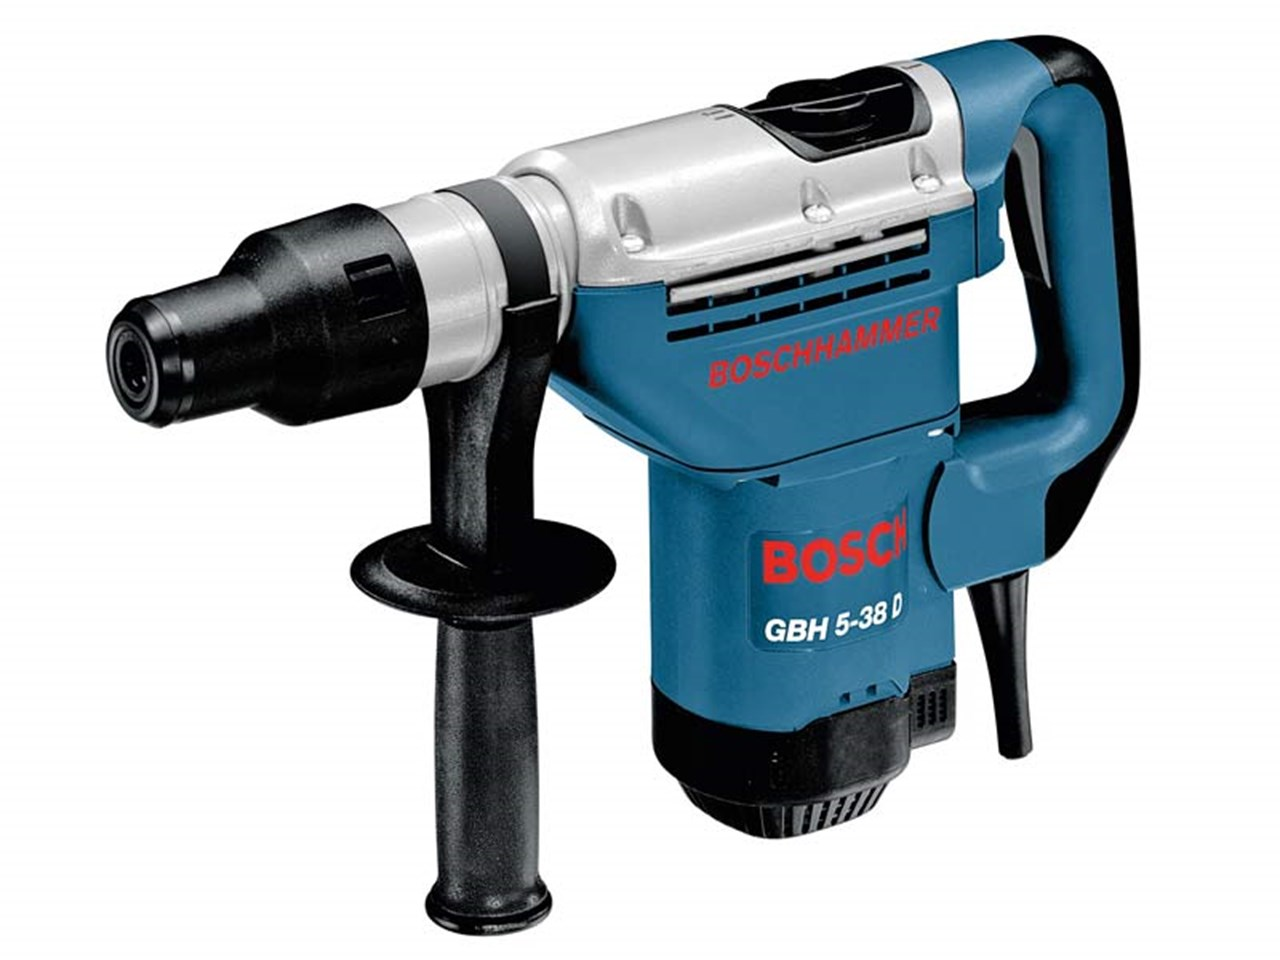 bosch gbh538d 110v rotary hammer with sds max. Black Bedroom Furniture Sets. Home Design Ideas